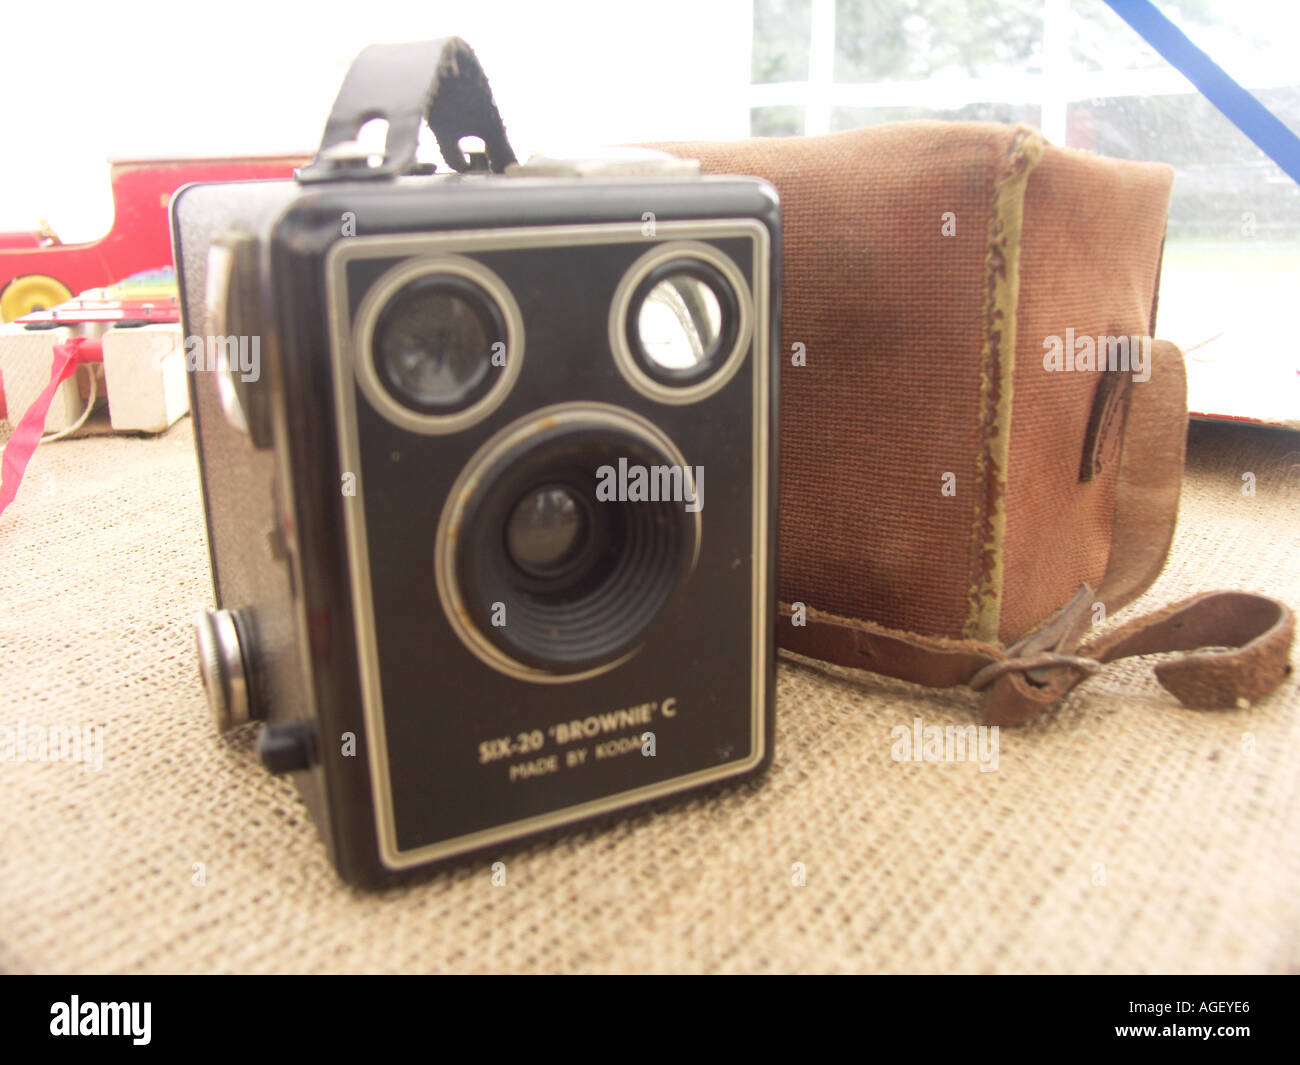 Bow brownie camera and case - Stock Image